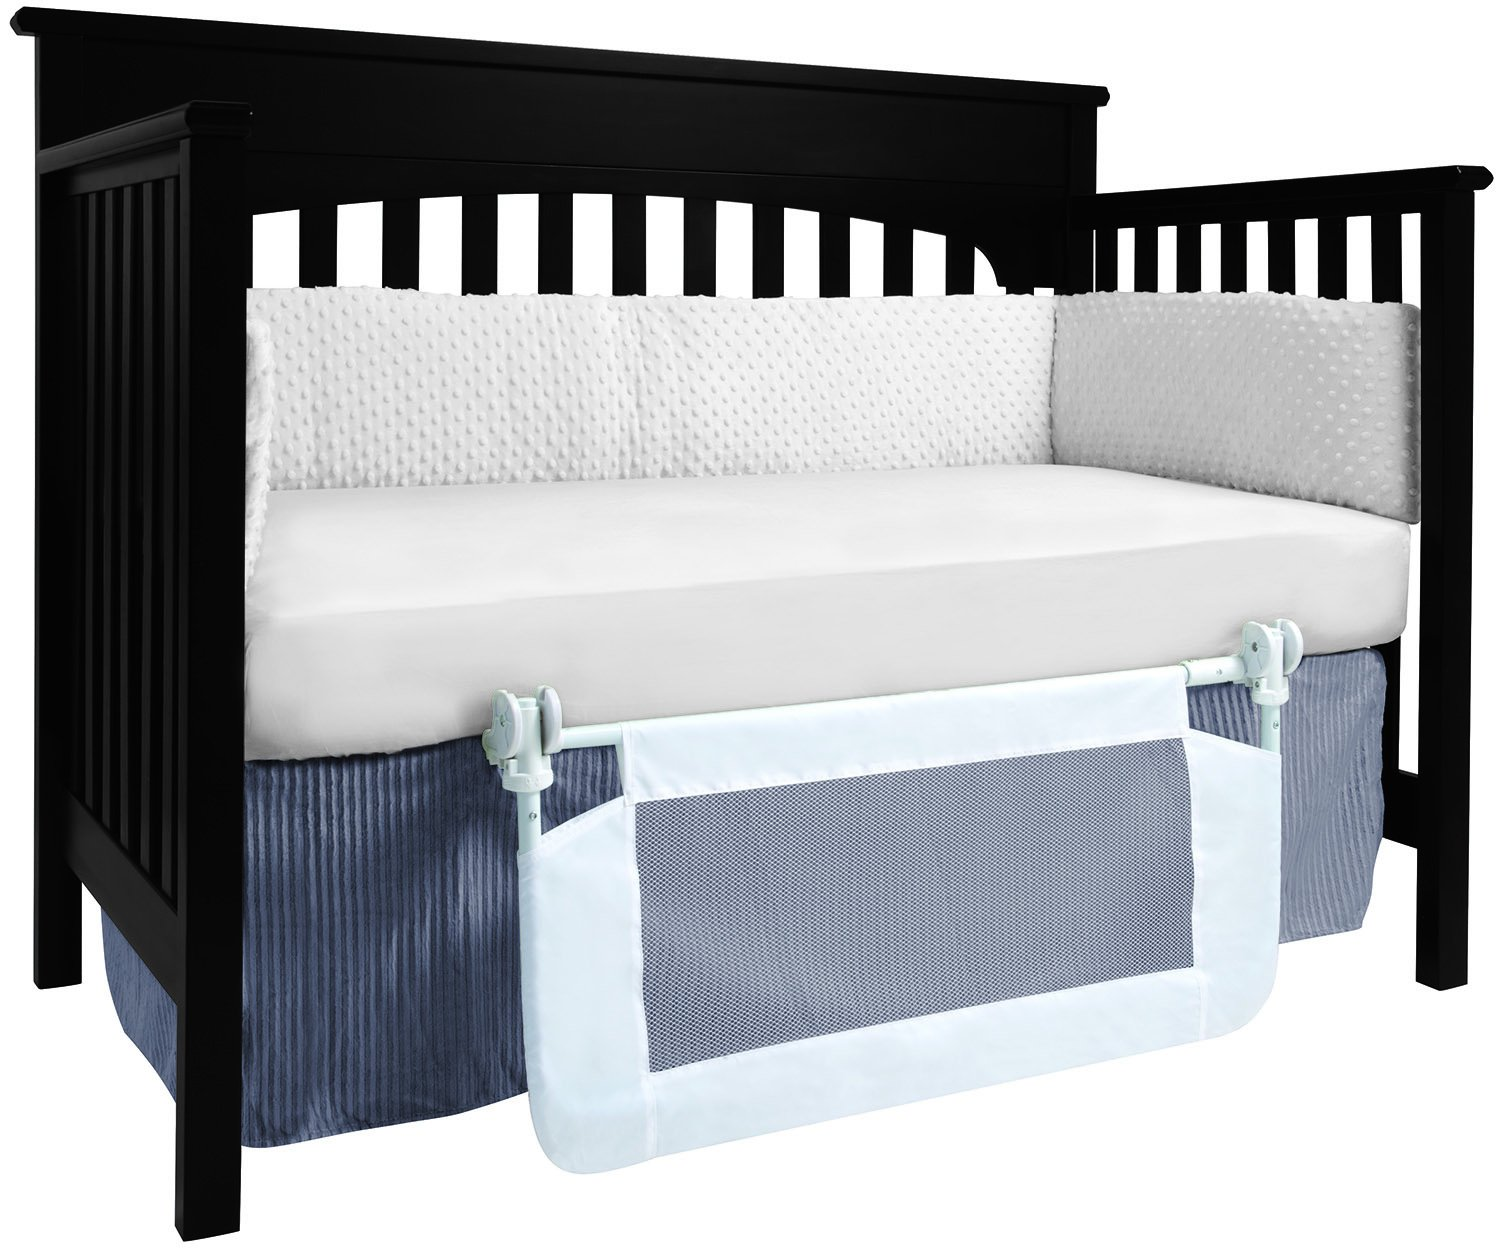 Amazon Hiccapop Convertible Crib Toddler Bed Rail Guard With Reinforced Anchor Safety Baby